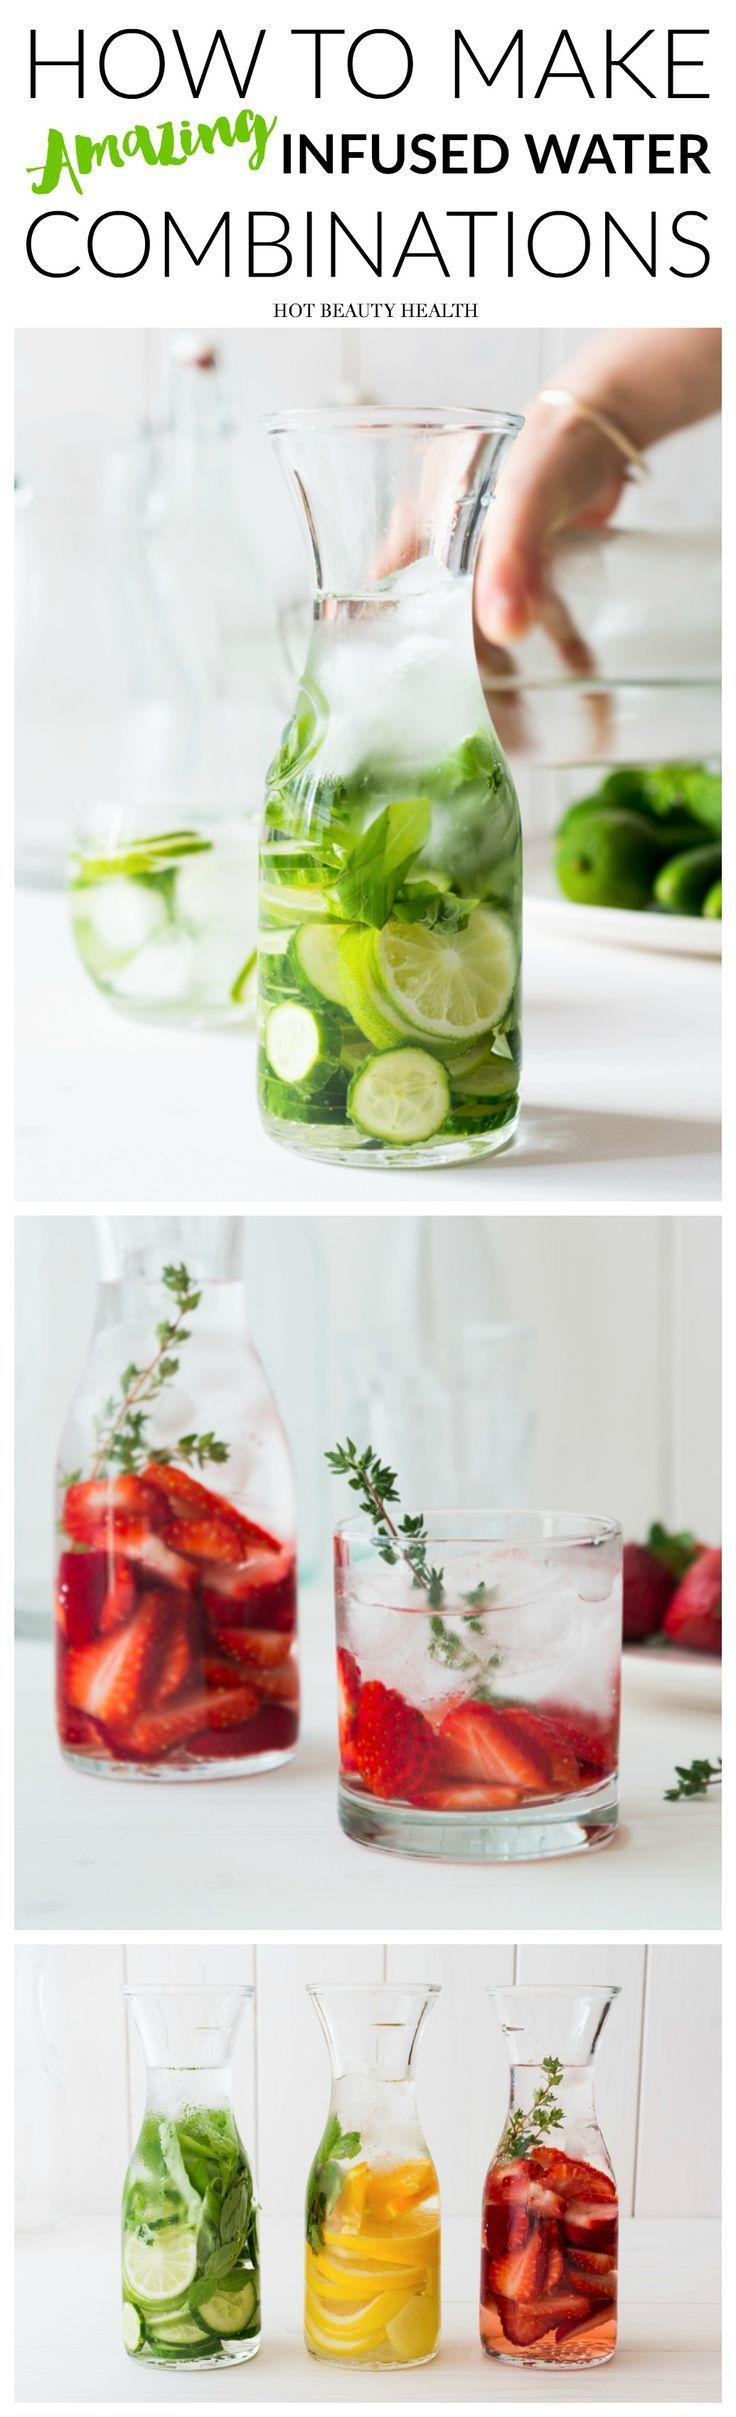 Fruit Infused water recipes aka detox water are perfect for aiding in weight loss, cleansing the body, drinking during pregnancy, and keeping skin glowing. Click to see all the many benefits of making infused water.